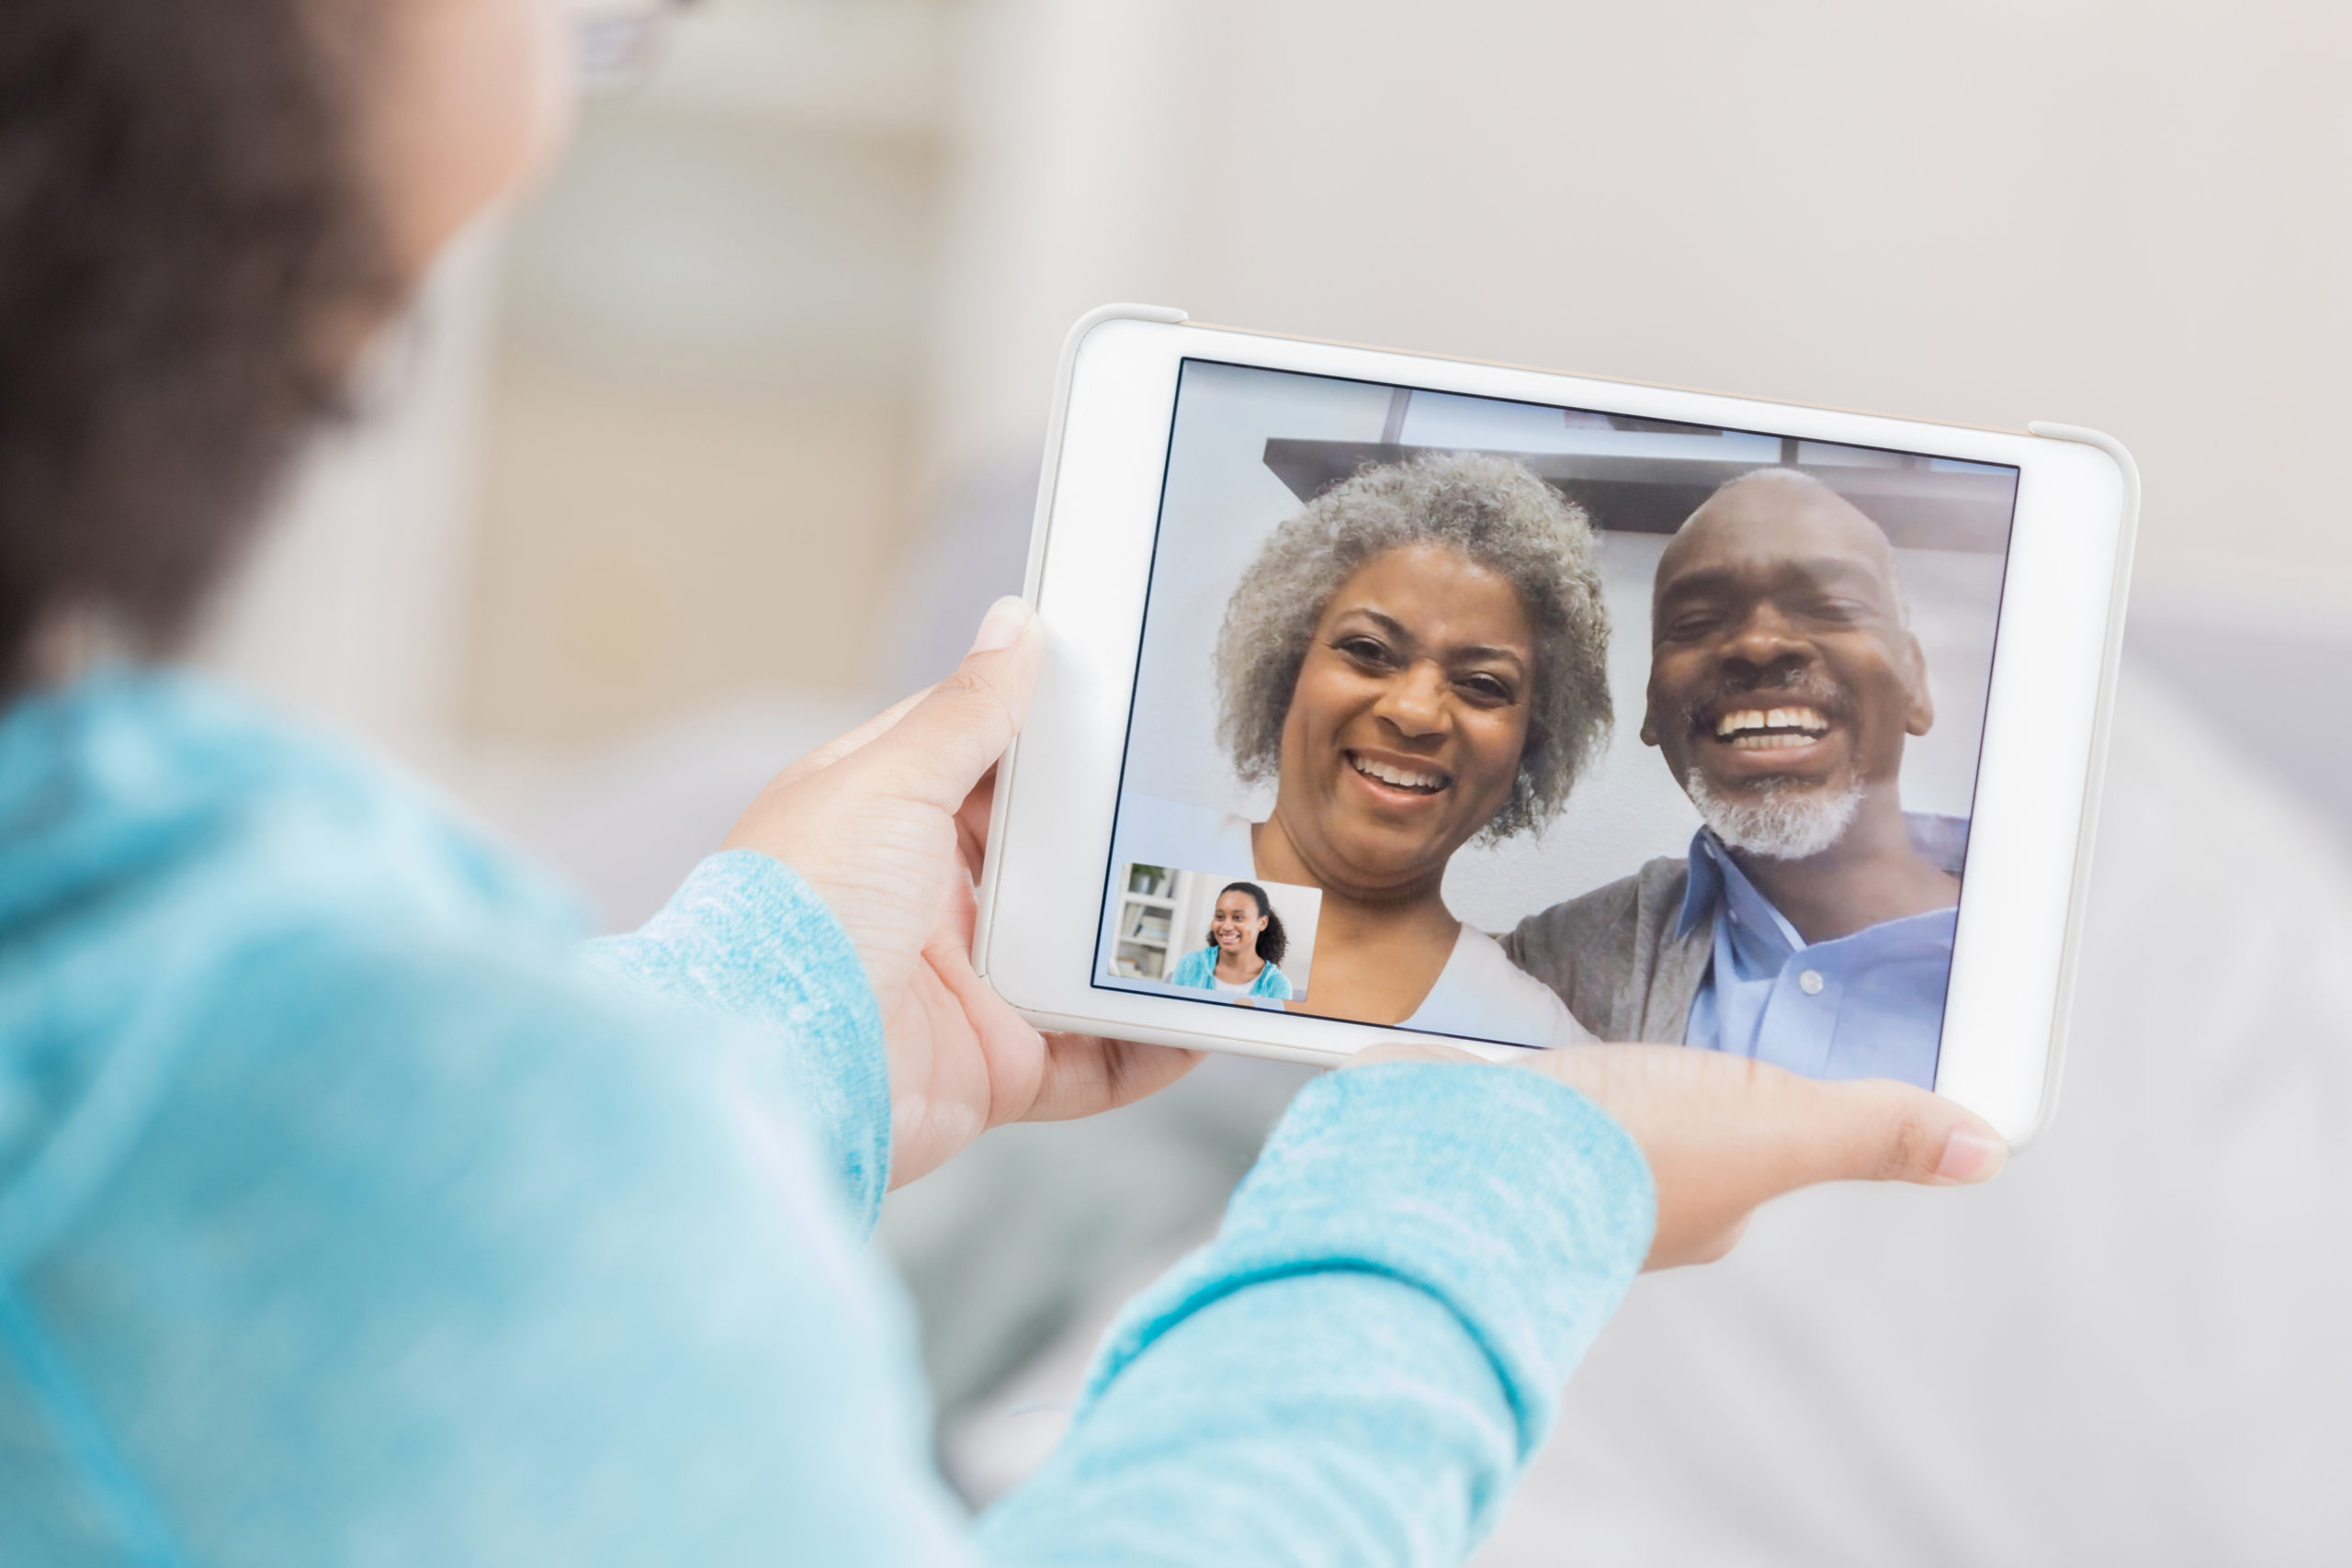 Activity idea for children - video chatting with grandparents on an ipad